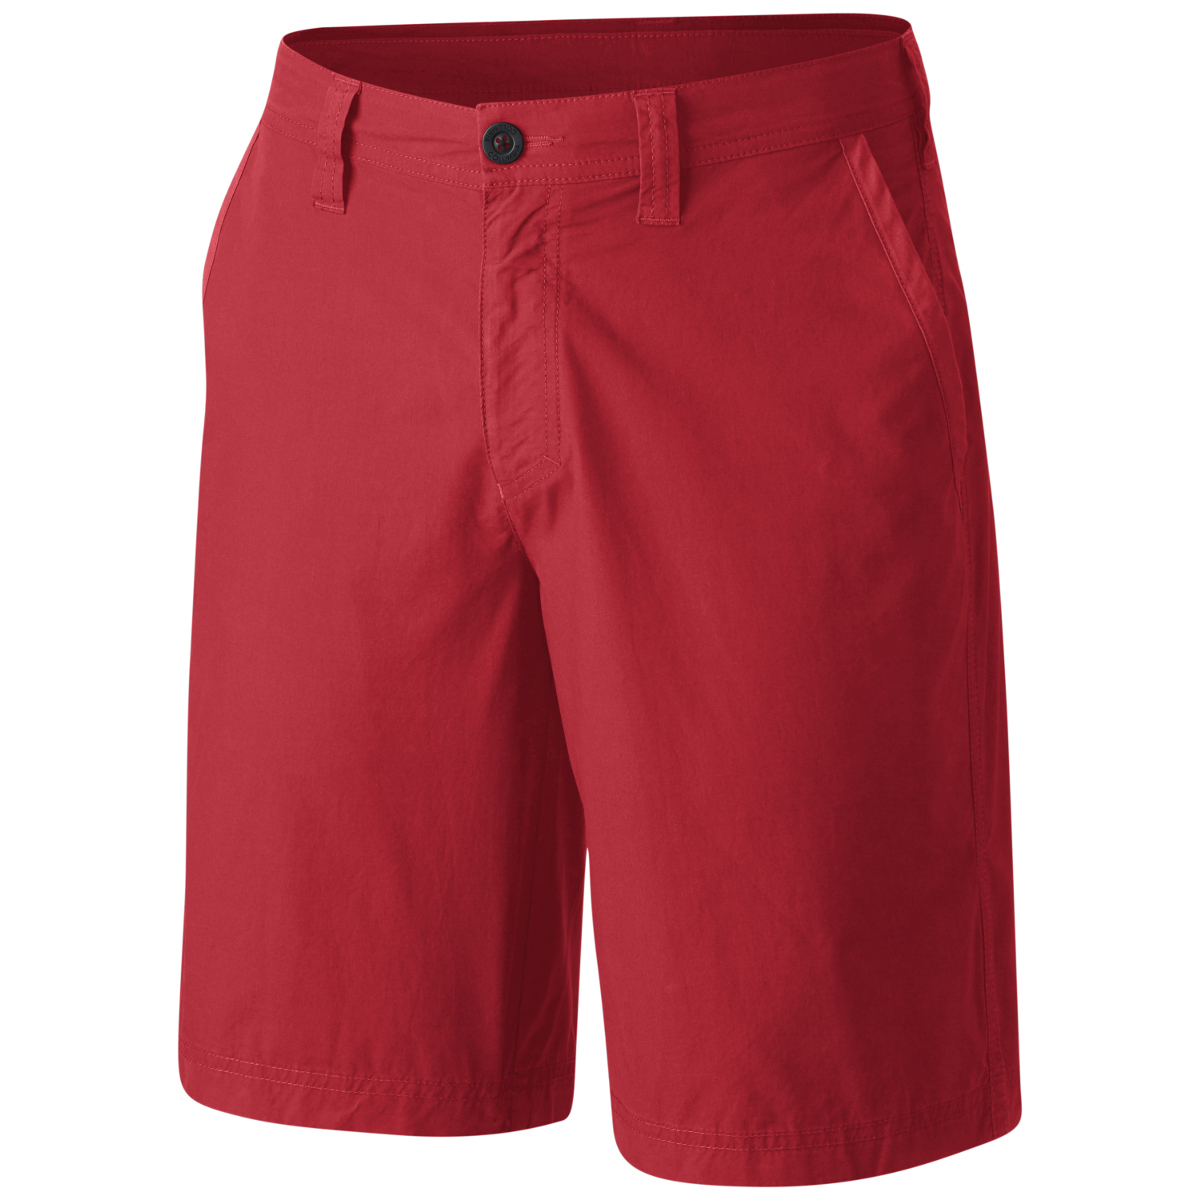 Columbia Men's Washed Out Shorts - Red, 38